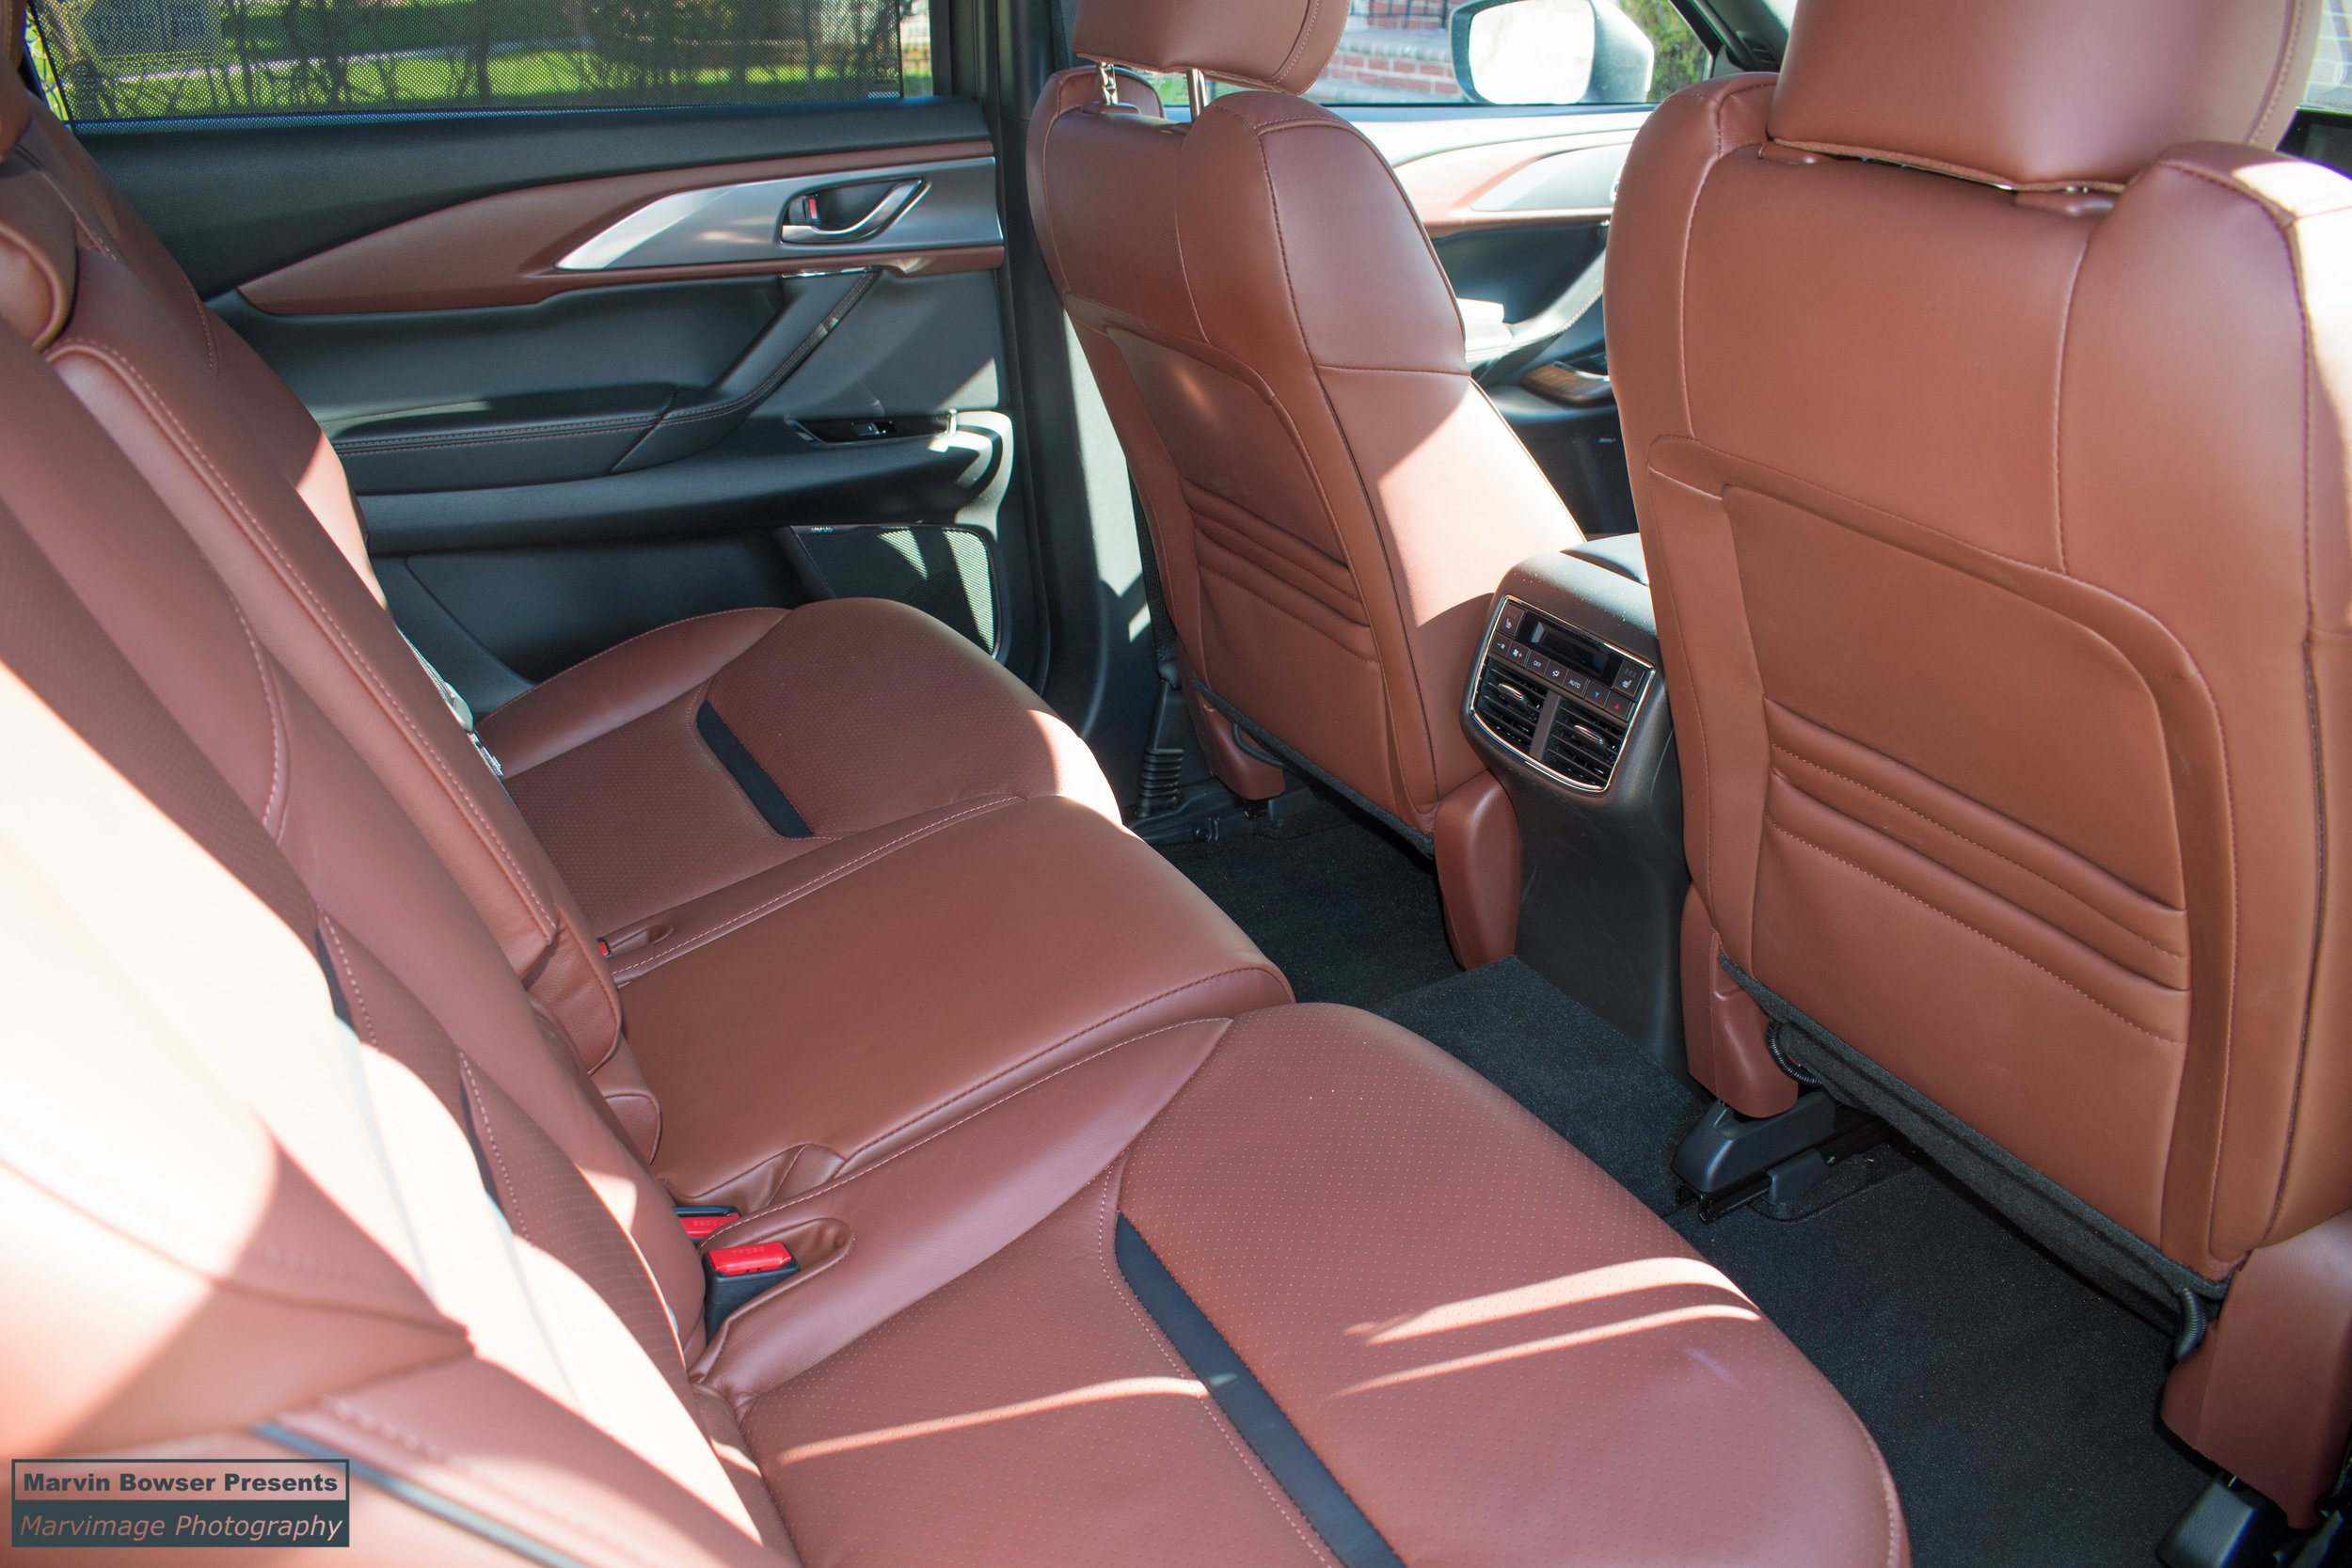 Rear seat heater and HVAC controls